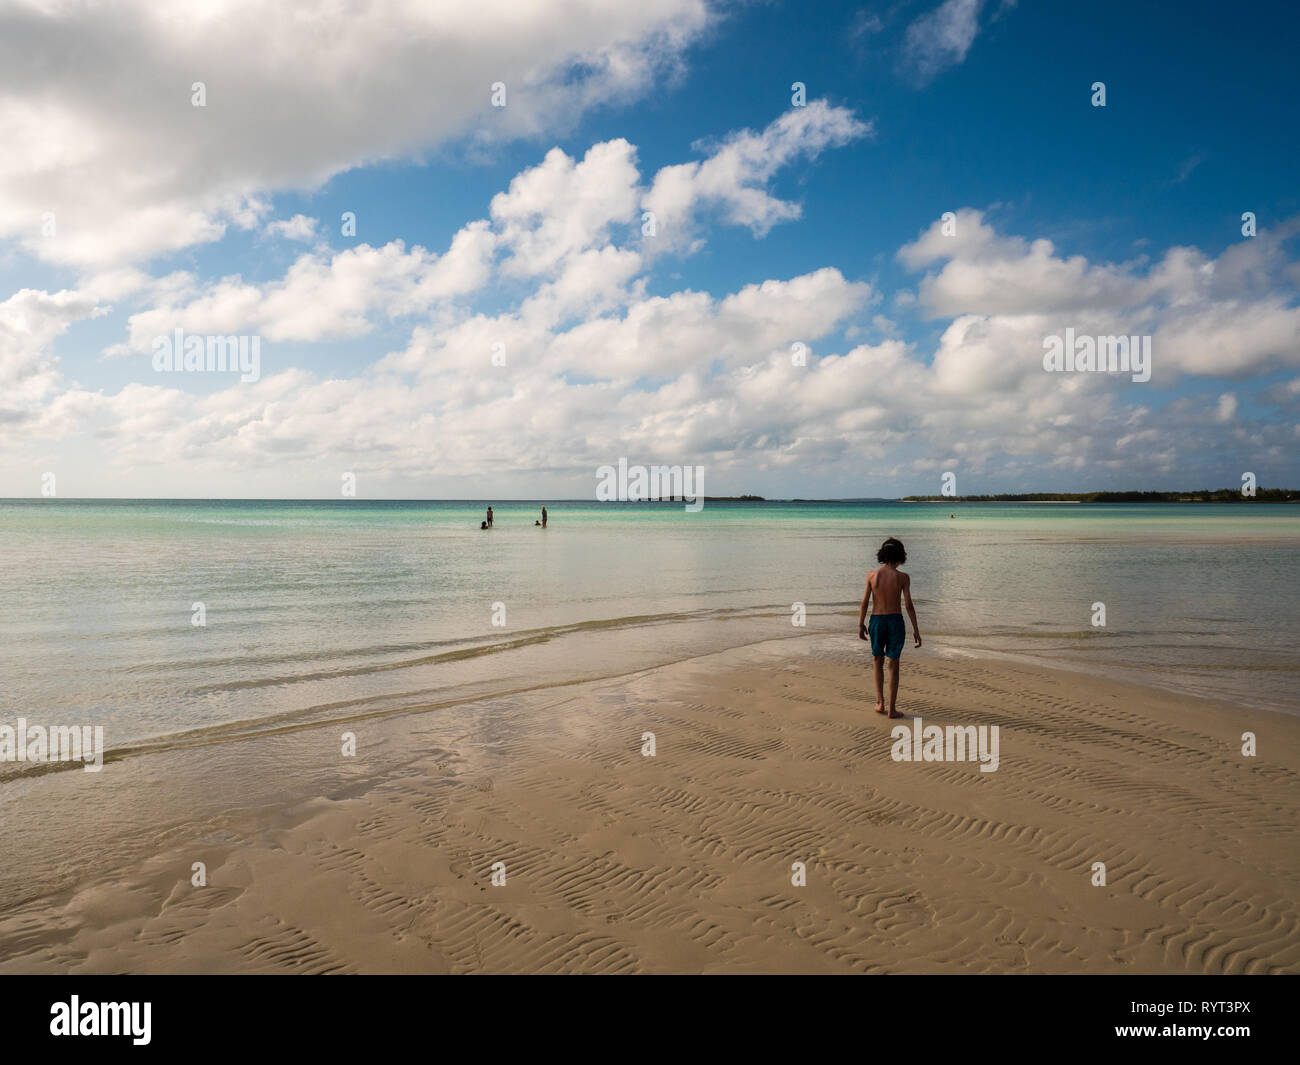 Young Boy on Sandy Beach, Caribbean Sea, Governors Harbour, Eleuthera, The Bahamas, The Caribbean. - Stock Image